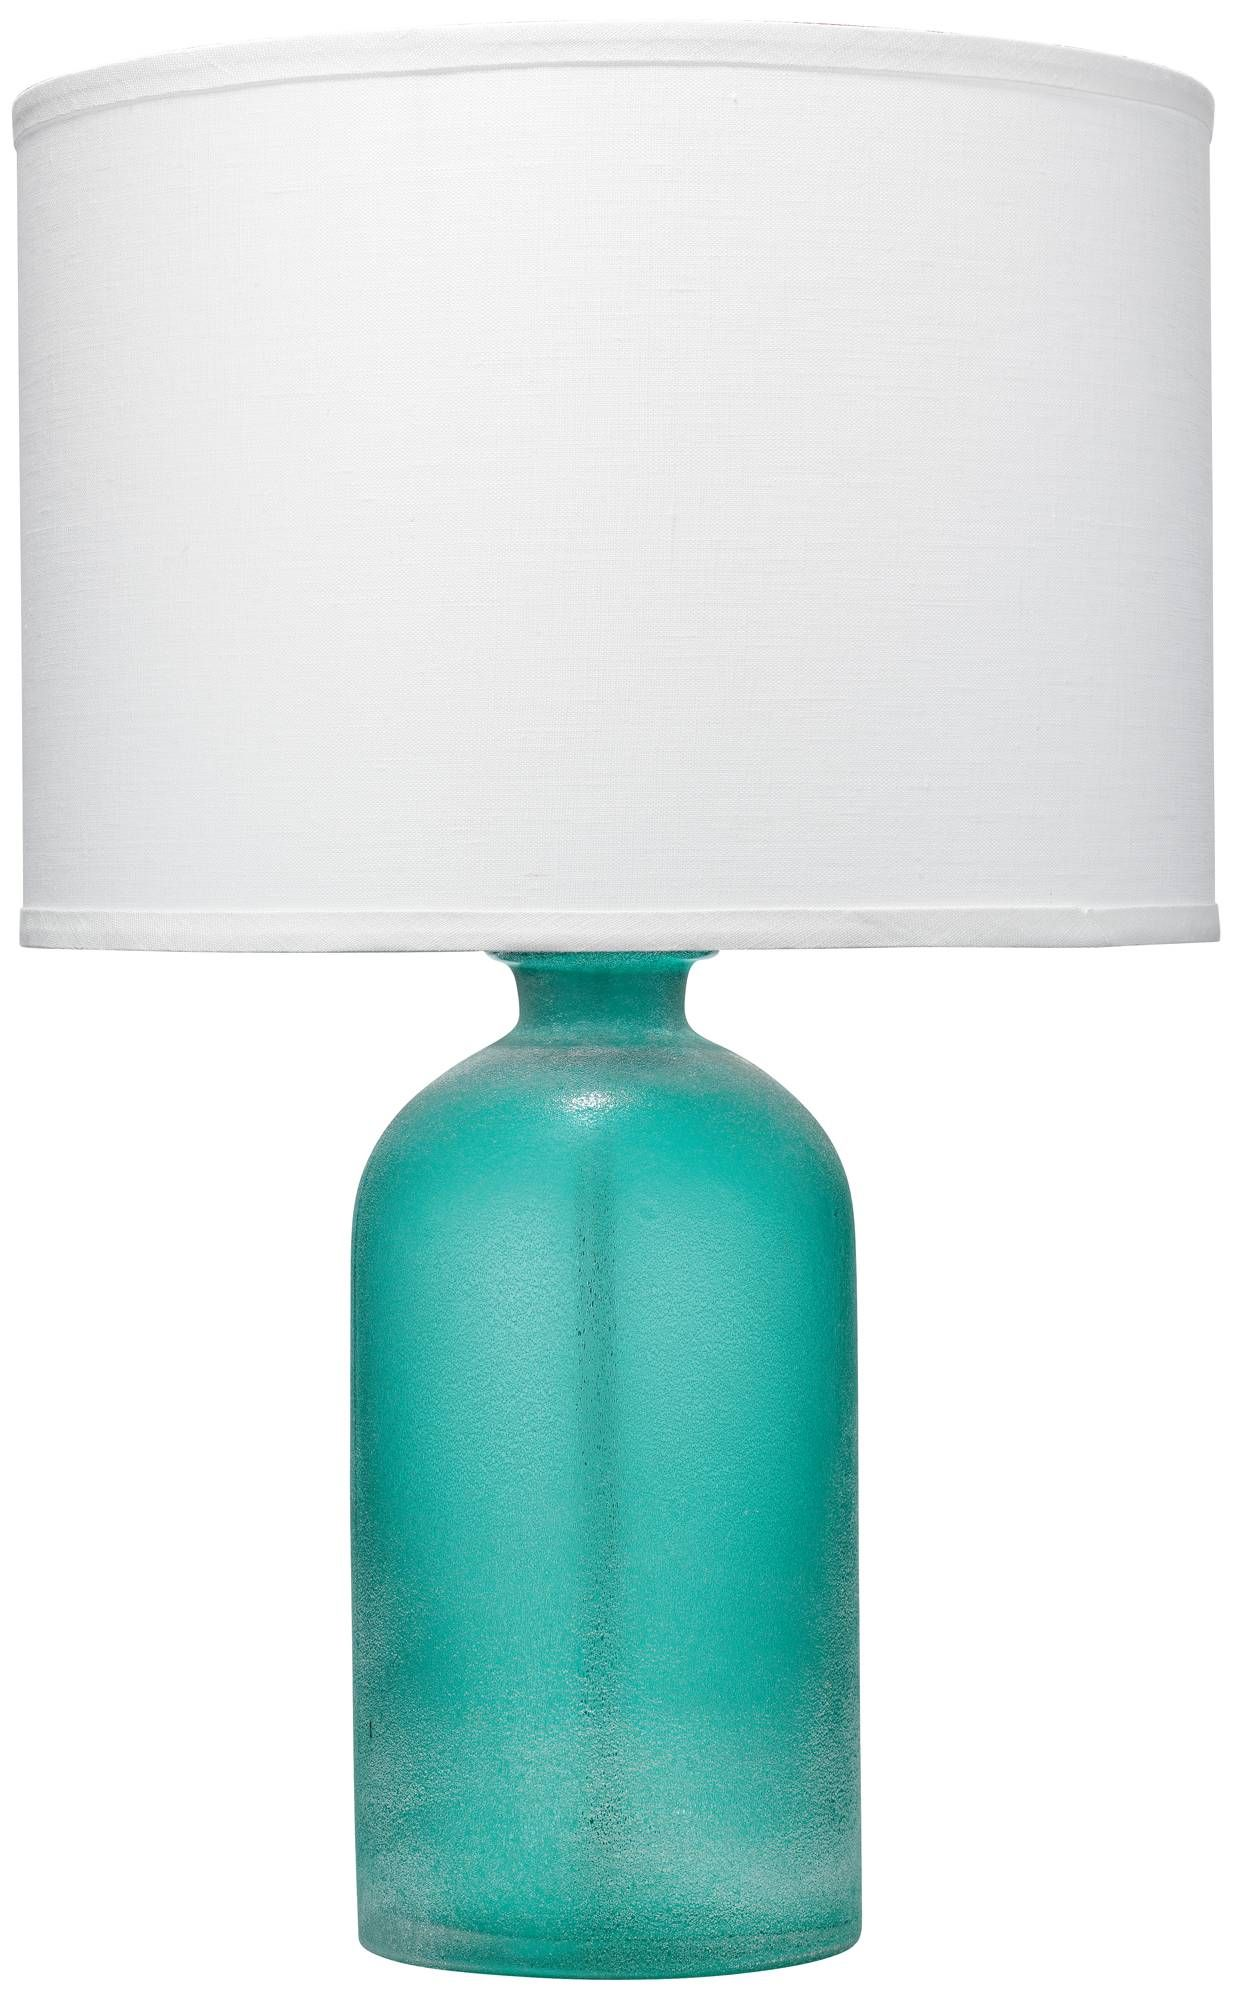 Jamie young surfside tumbled aqua frost glass table lamp style jamie young surfside tumbled aqua frost glass table lamp 10f36 lamps plus geotapseo Images